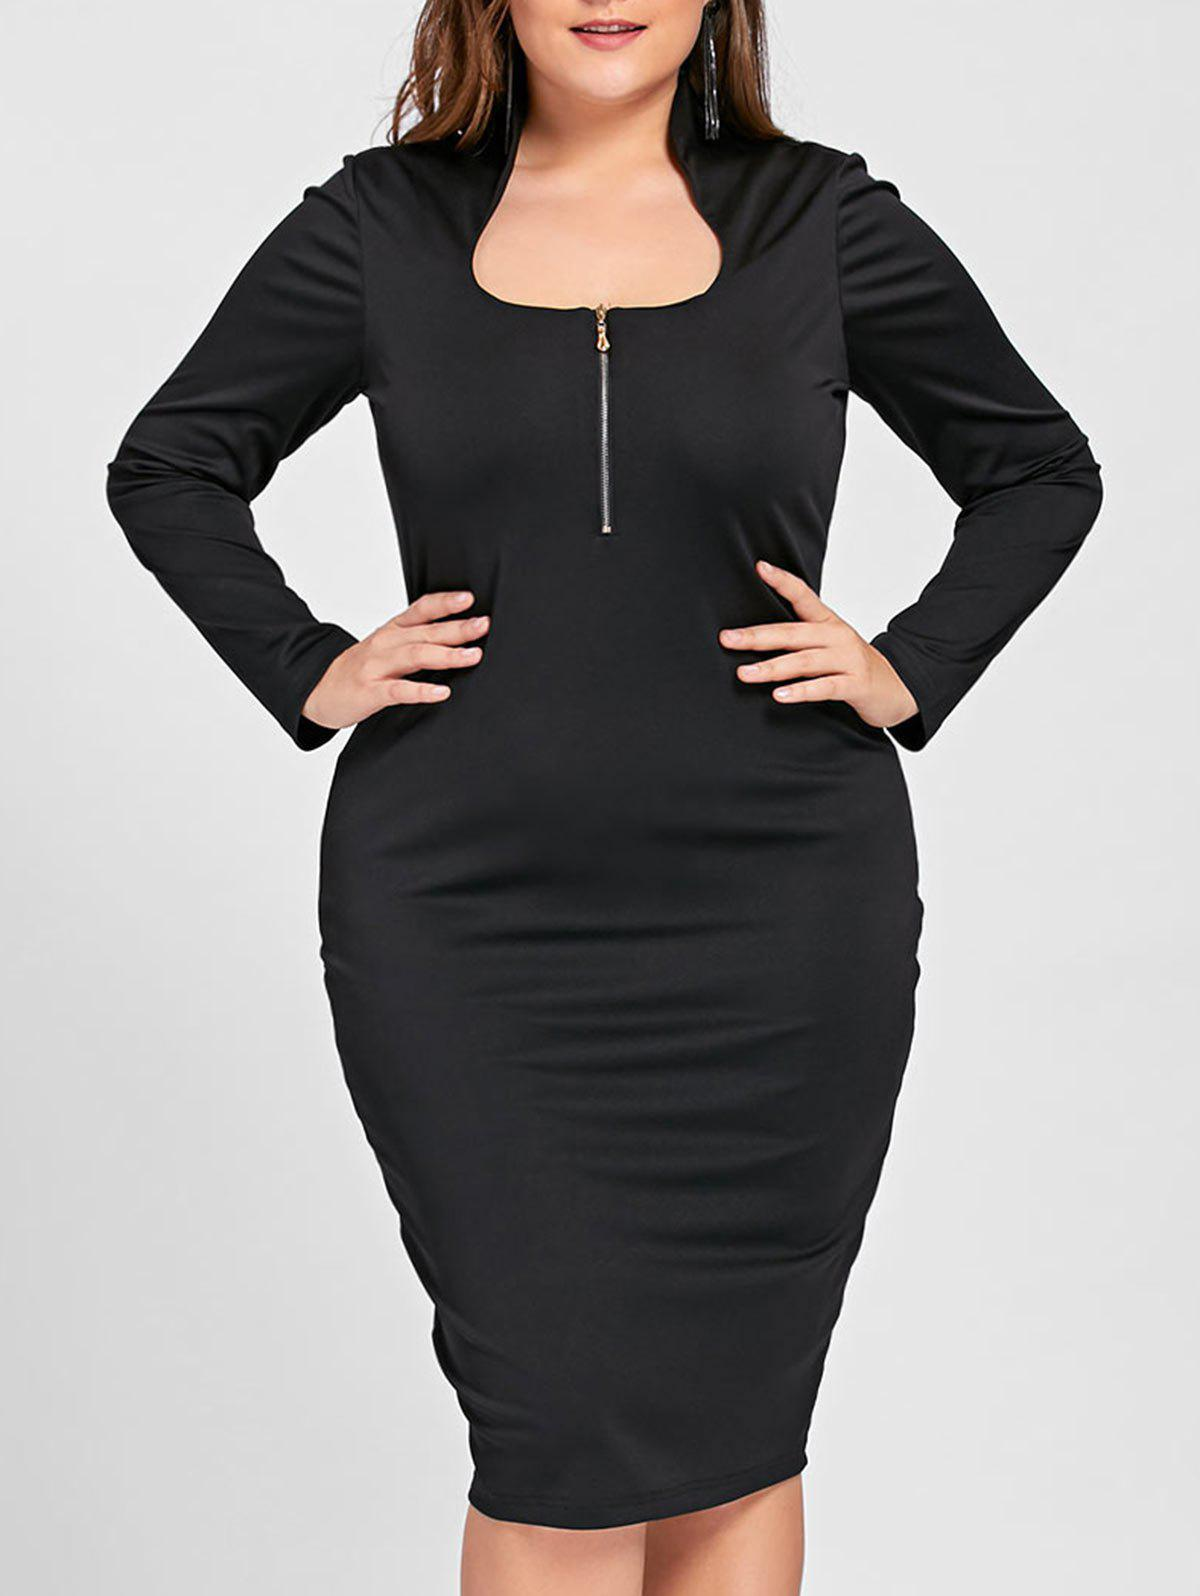 Plus Size Long Sleeve Evening DressWOMEN<br><br>Size: 3XL; Color: BLACK; Style: Brief; Material: Polyester,Spandex; Silhouette: Pencil; Dresses Length: Knee-Length; Neckline: Stand; Sleeve Length: Long Sleeves; Pattern Type: Solid Color; With Belt: No; Season: Fall,Spring; Weight: 0.3700kg; Package Contents: 1 x Dress;